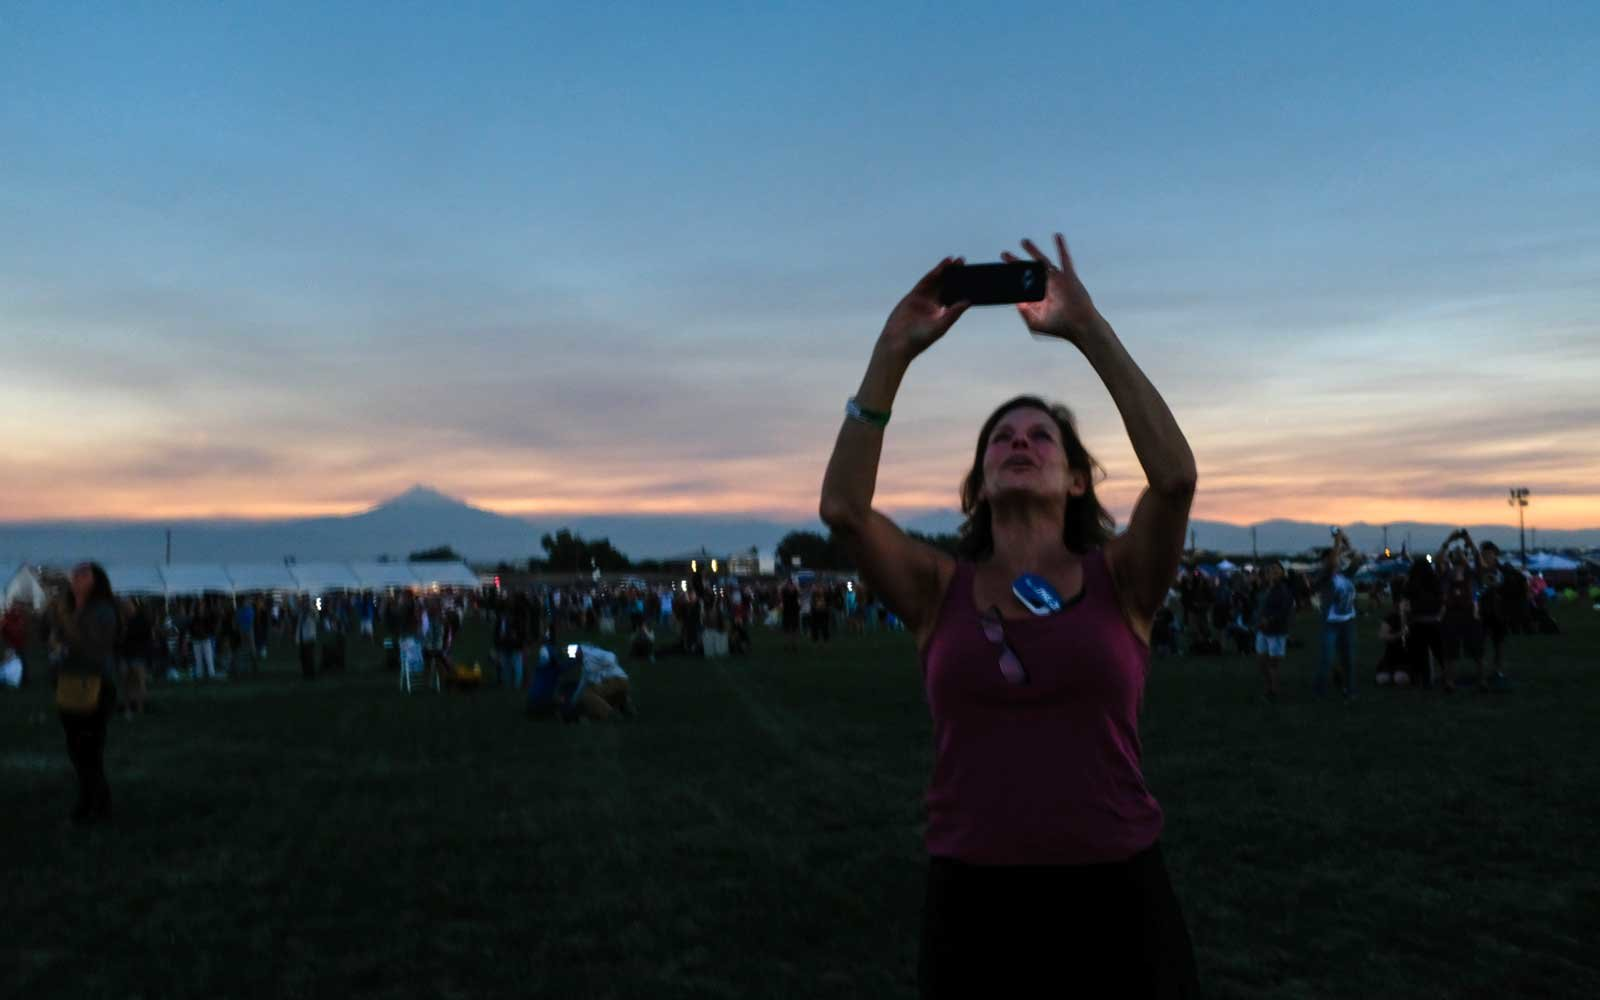 Barbara Hintzen of Edmonds, Washington records the sun during totality on August 21, 2017 in Madras, Oregon.